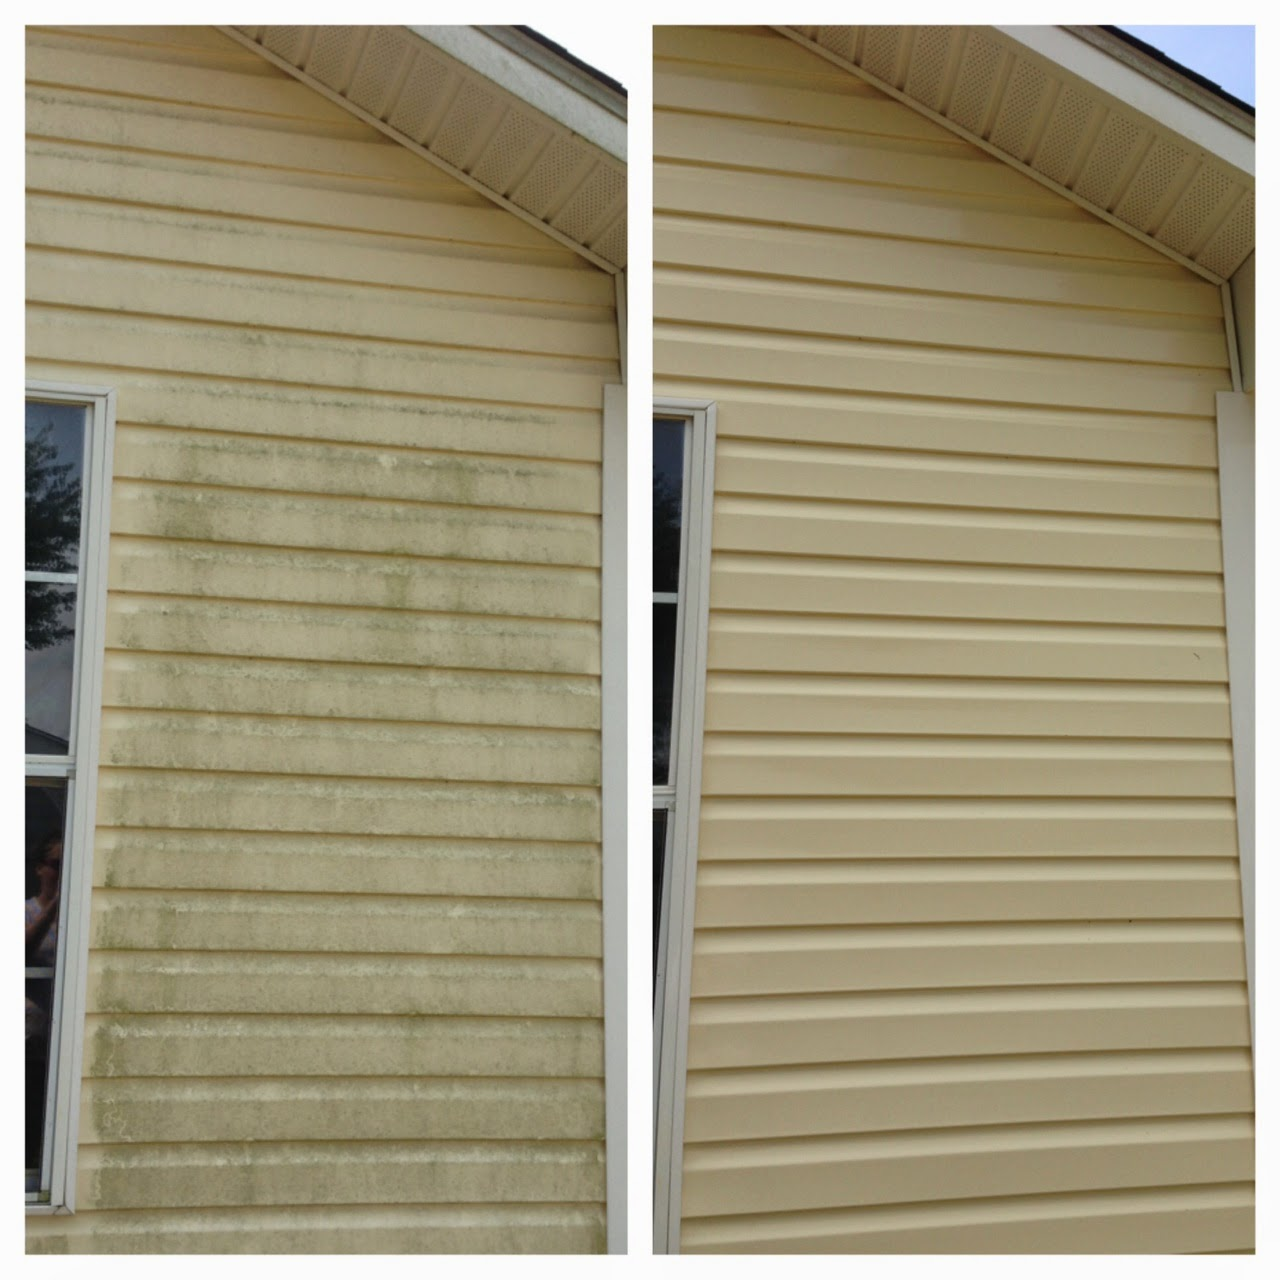 Before and After Pressure Washing fun!